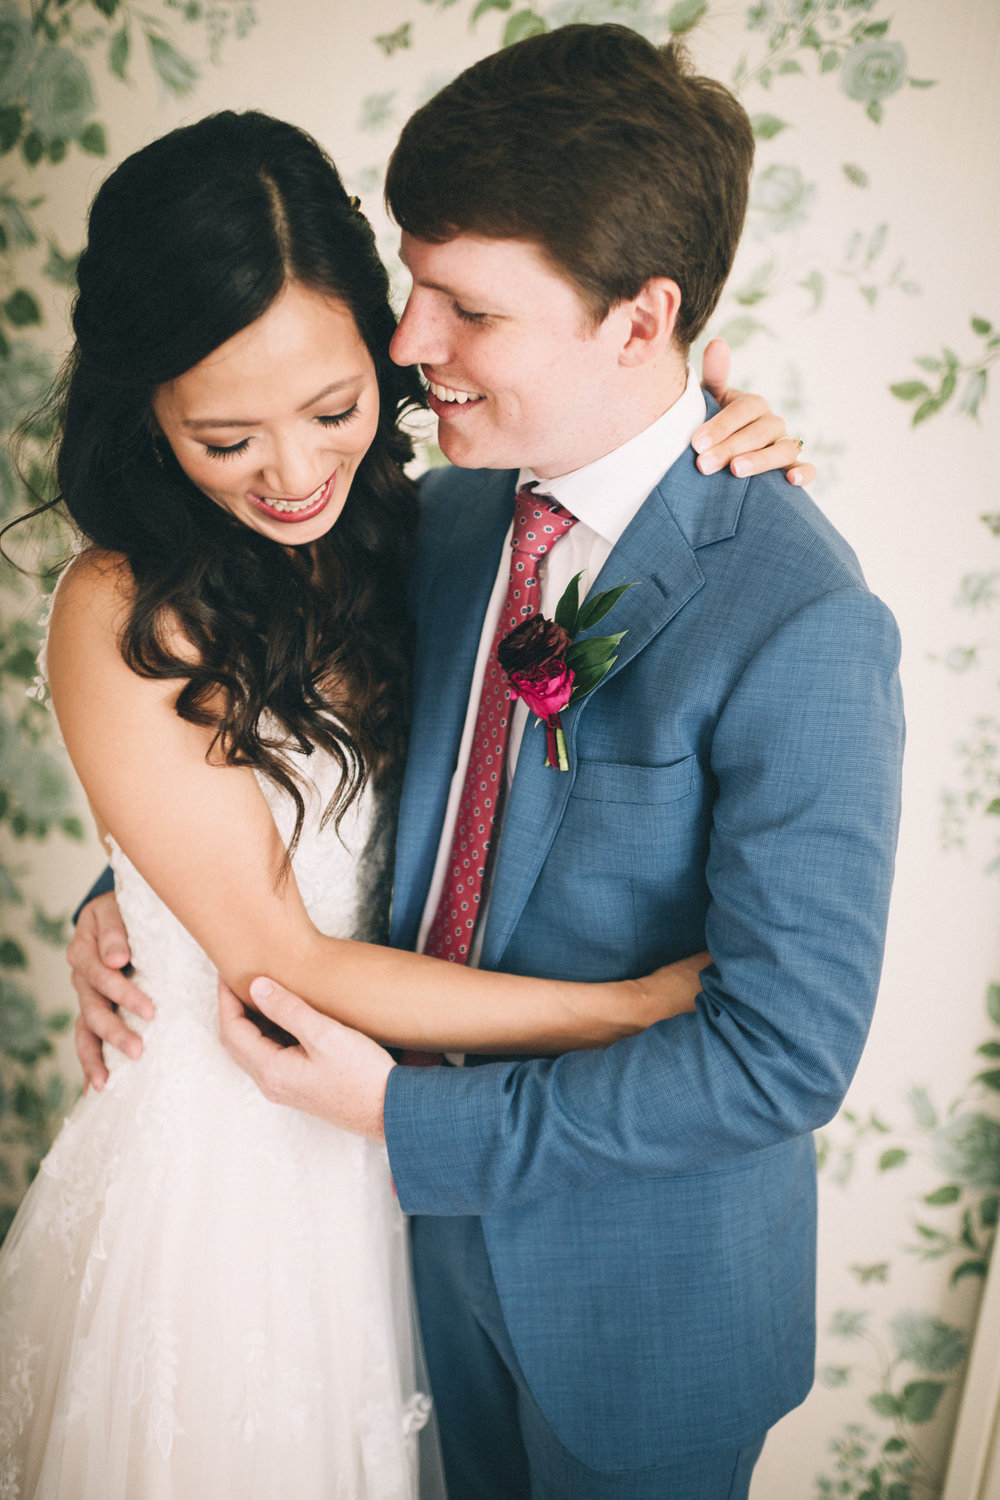 Louisville-Kentucky-Wedding-and-Elopement-Photographer-Sarah-Katherine-Davis-Photography-Summer-Jewel-Toned-Wedding-Chineese-Tea-Ceremony-Warrenwood-Manor-Danville-239.jpg